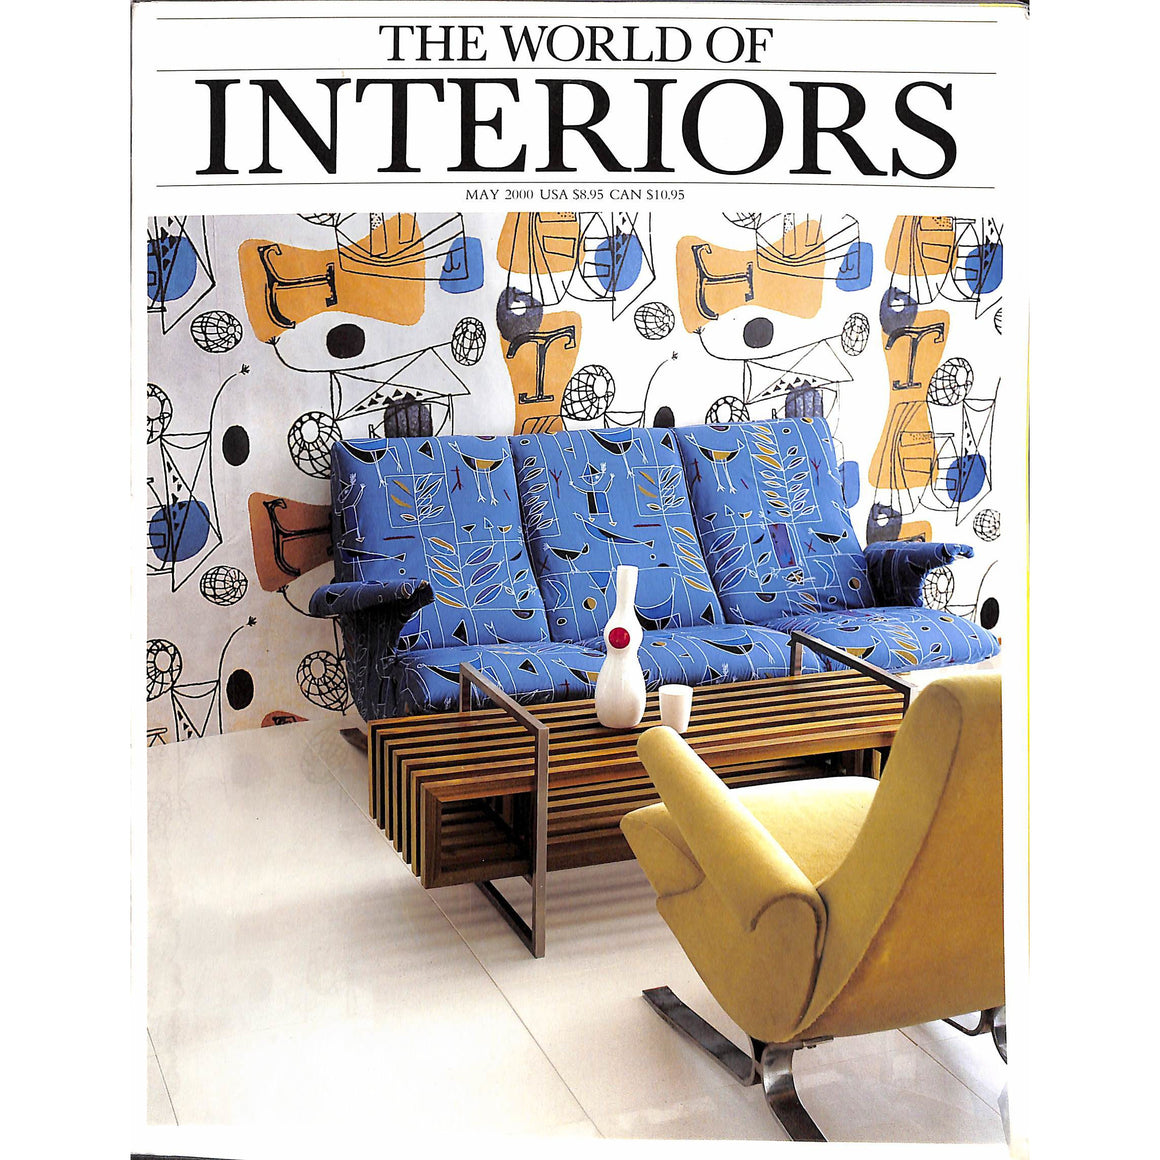 The World of Interiors May 2000